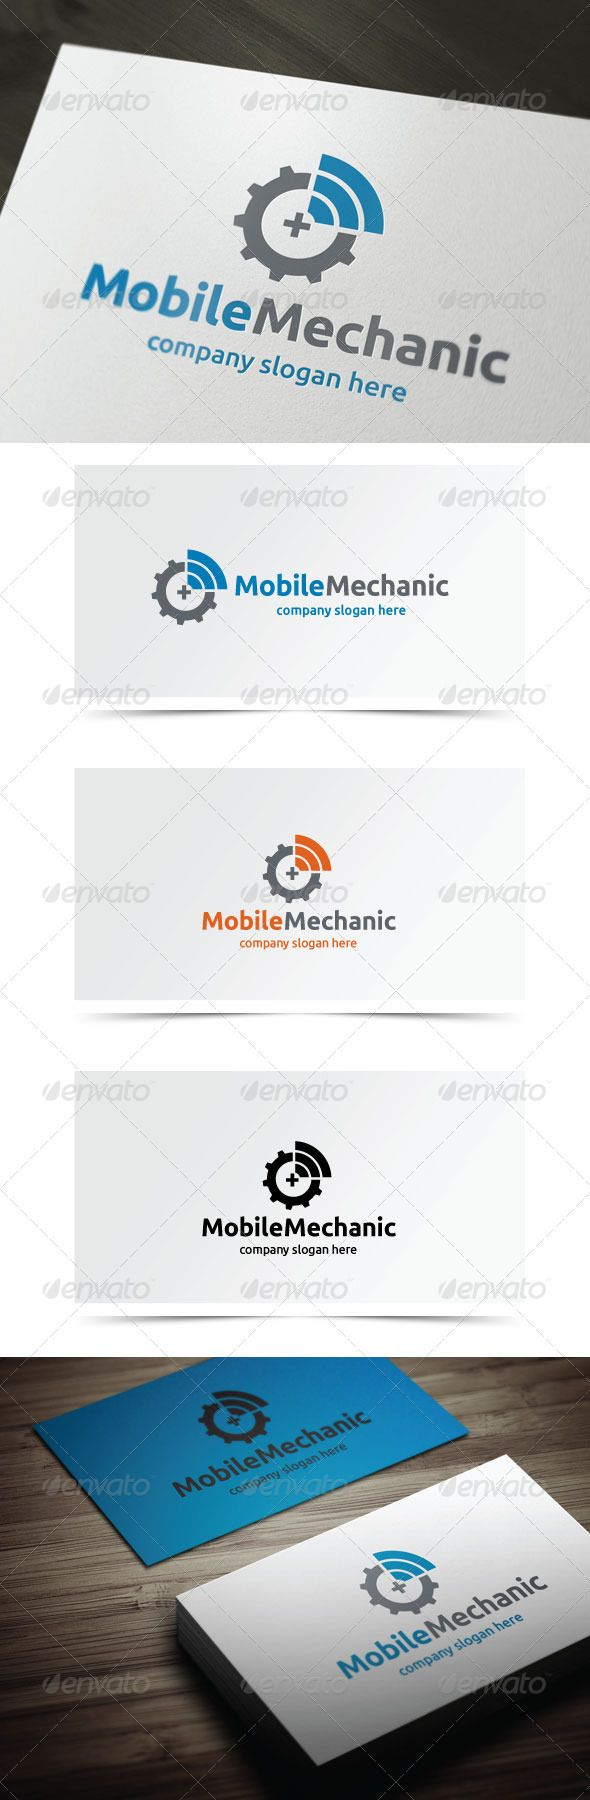 Mobile Mechanic Diagnose, app, application, building, check, communications, computer, connection, construction, design, develop, developer, digital, fix, gear, internet, magnifying glass, mechanic, media, network, plus, repair, security, software, solutions, technology, web, website, wireless, Mobile Mechanic